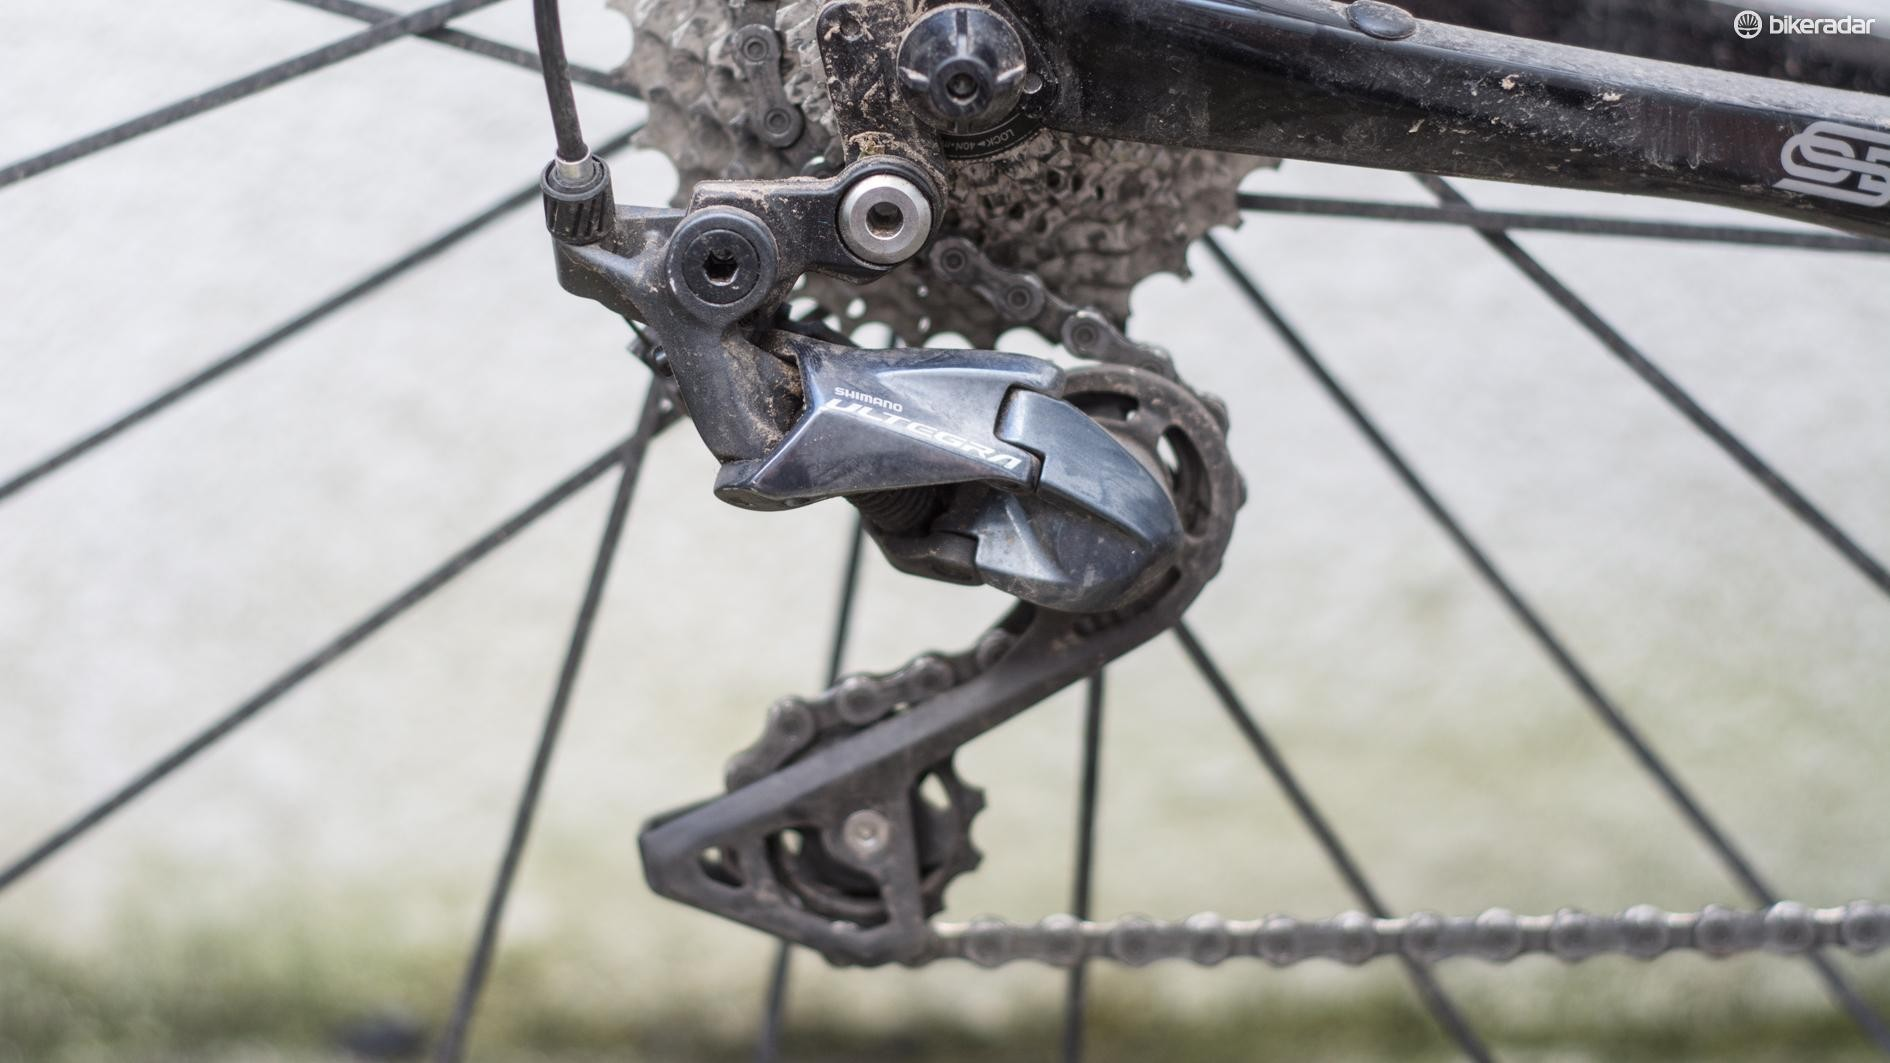 The new rear derailleur adopts Shimano's Shadow Geometry technology